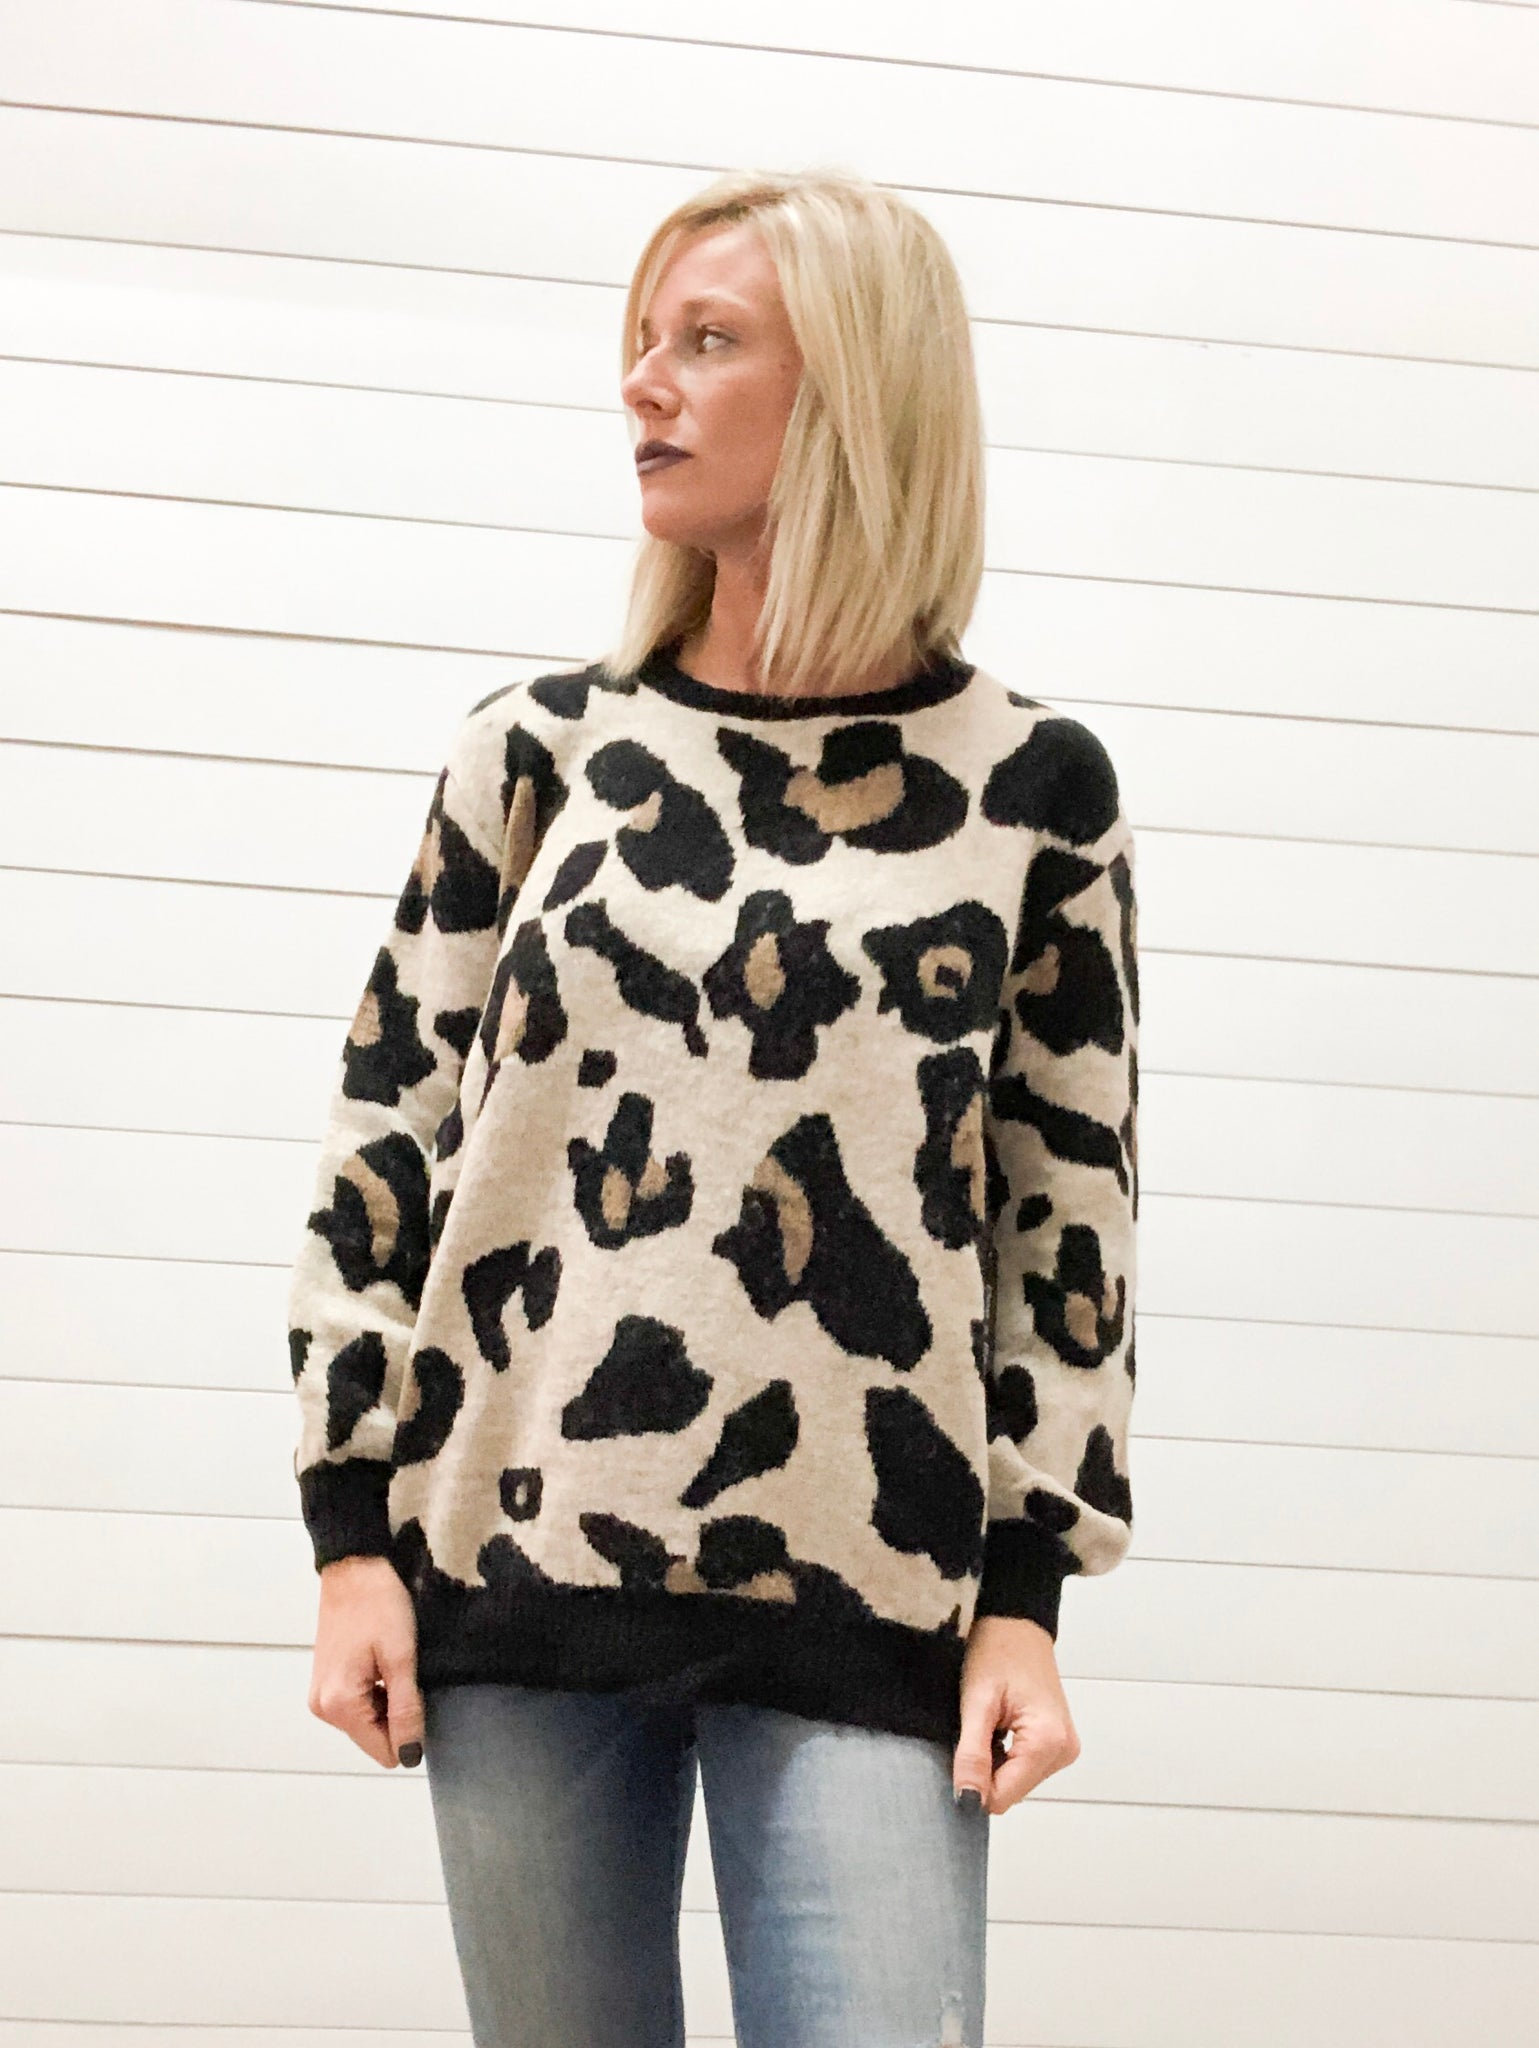 Large Scale Animal Print Sweater Top